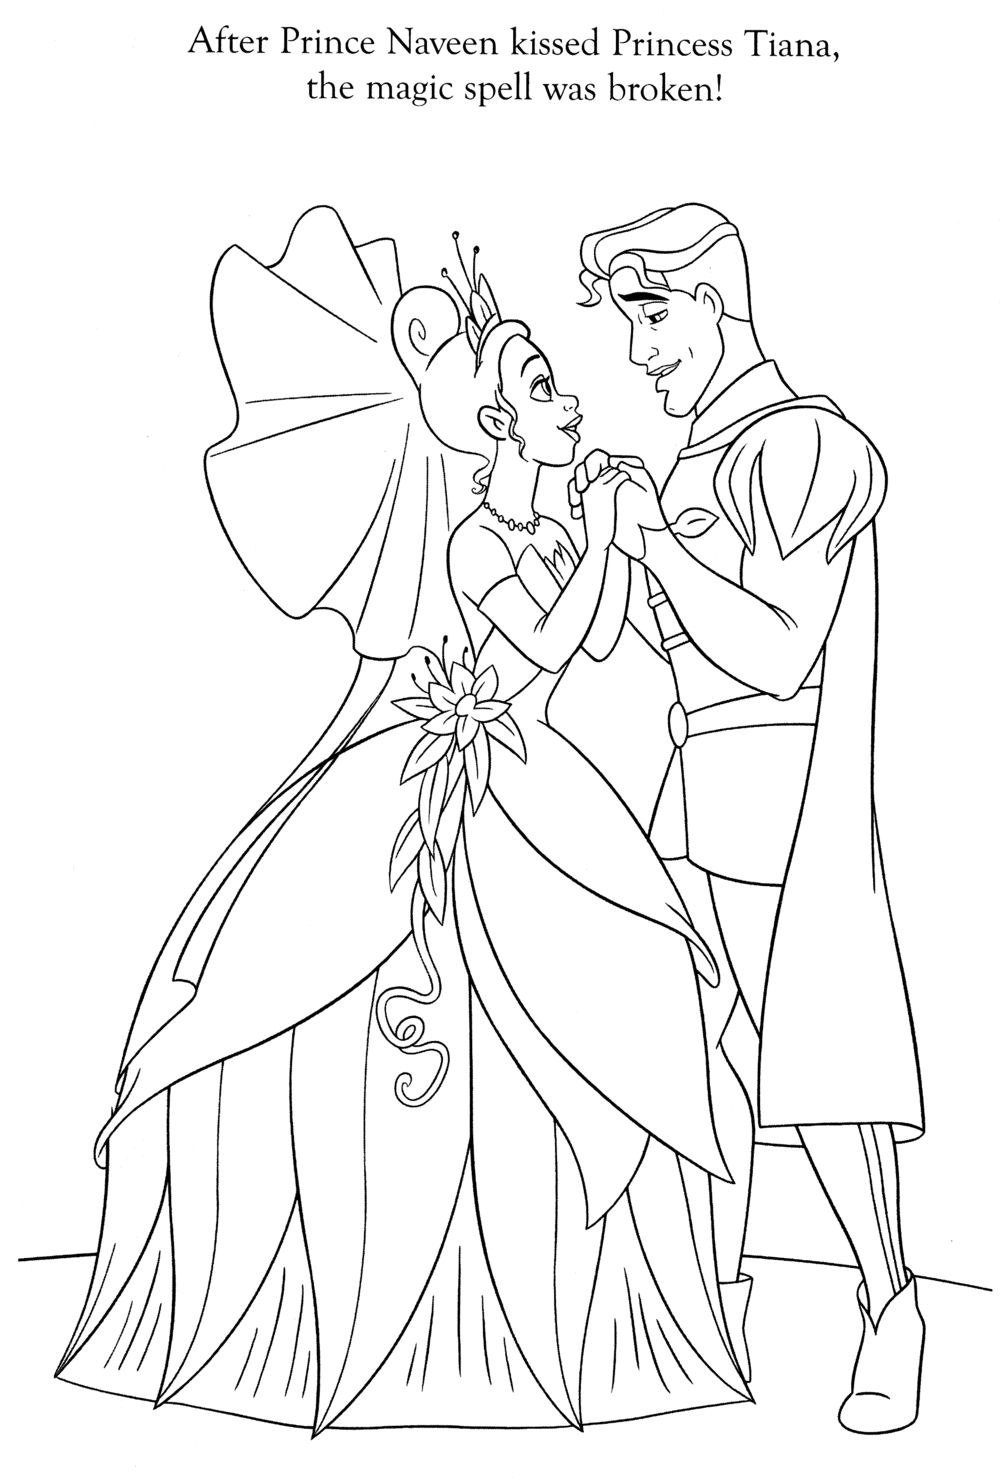 Tiana and Naveen Coloring Pages | Coloring Book Pages ...